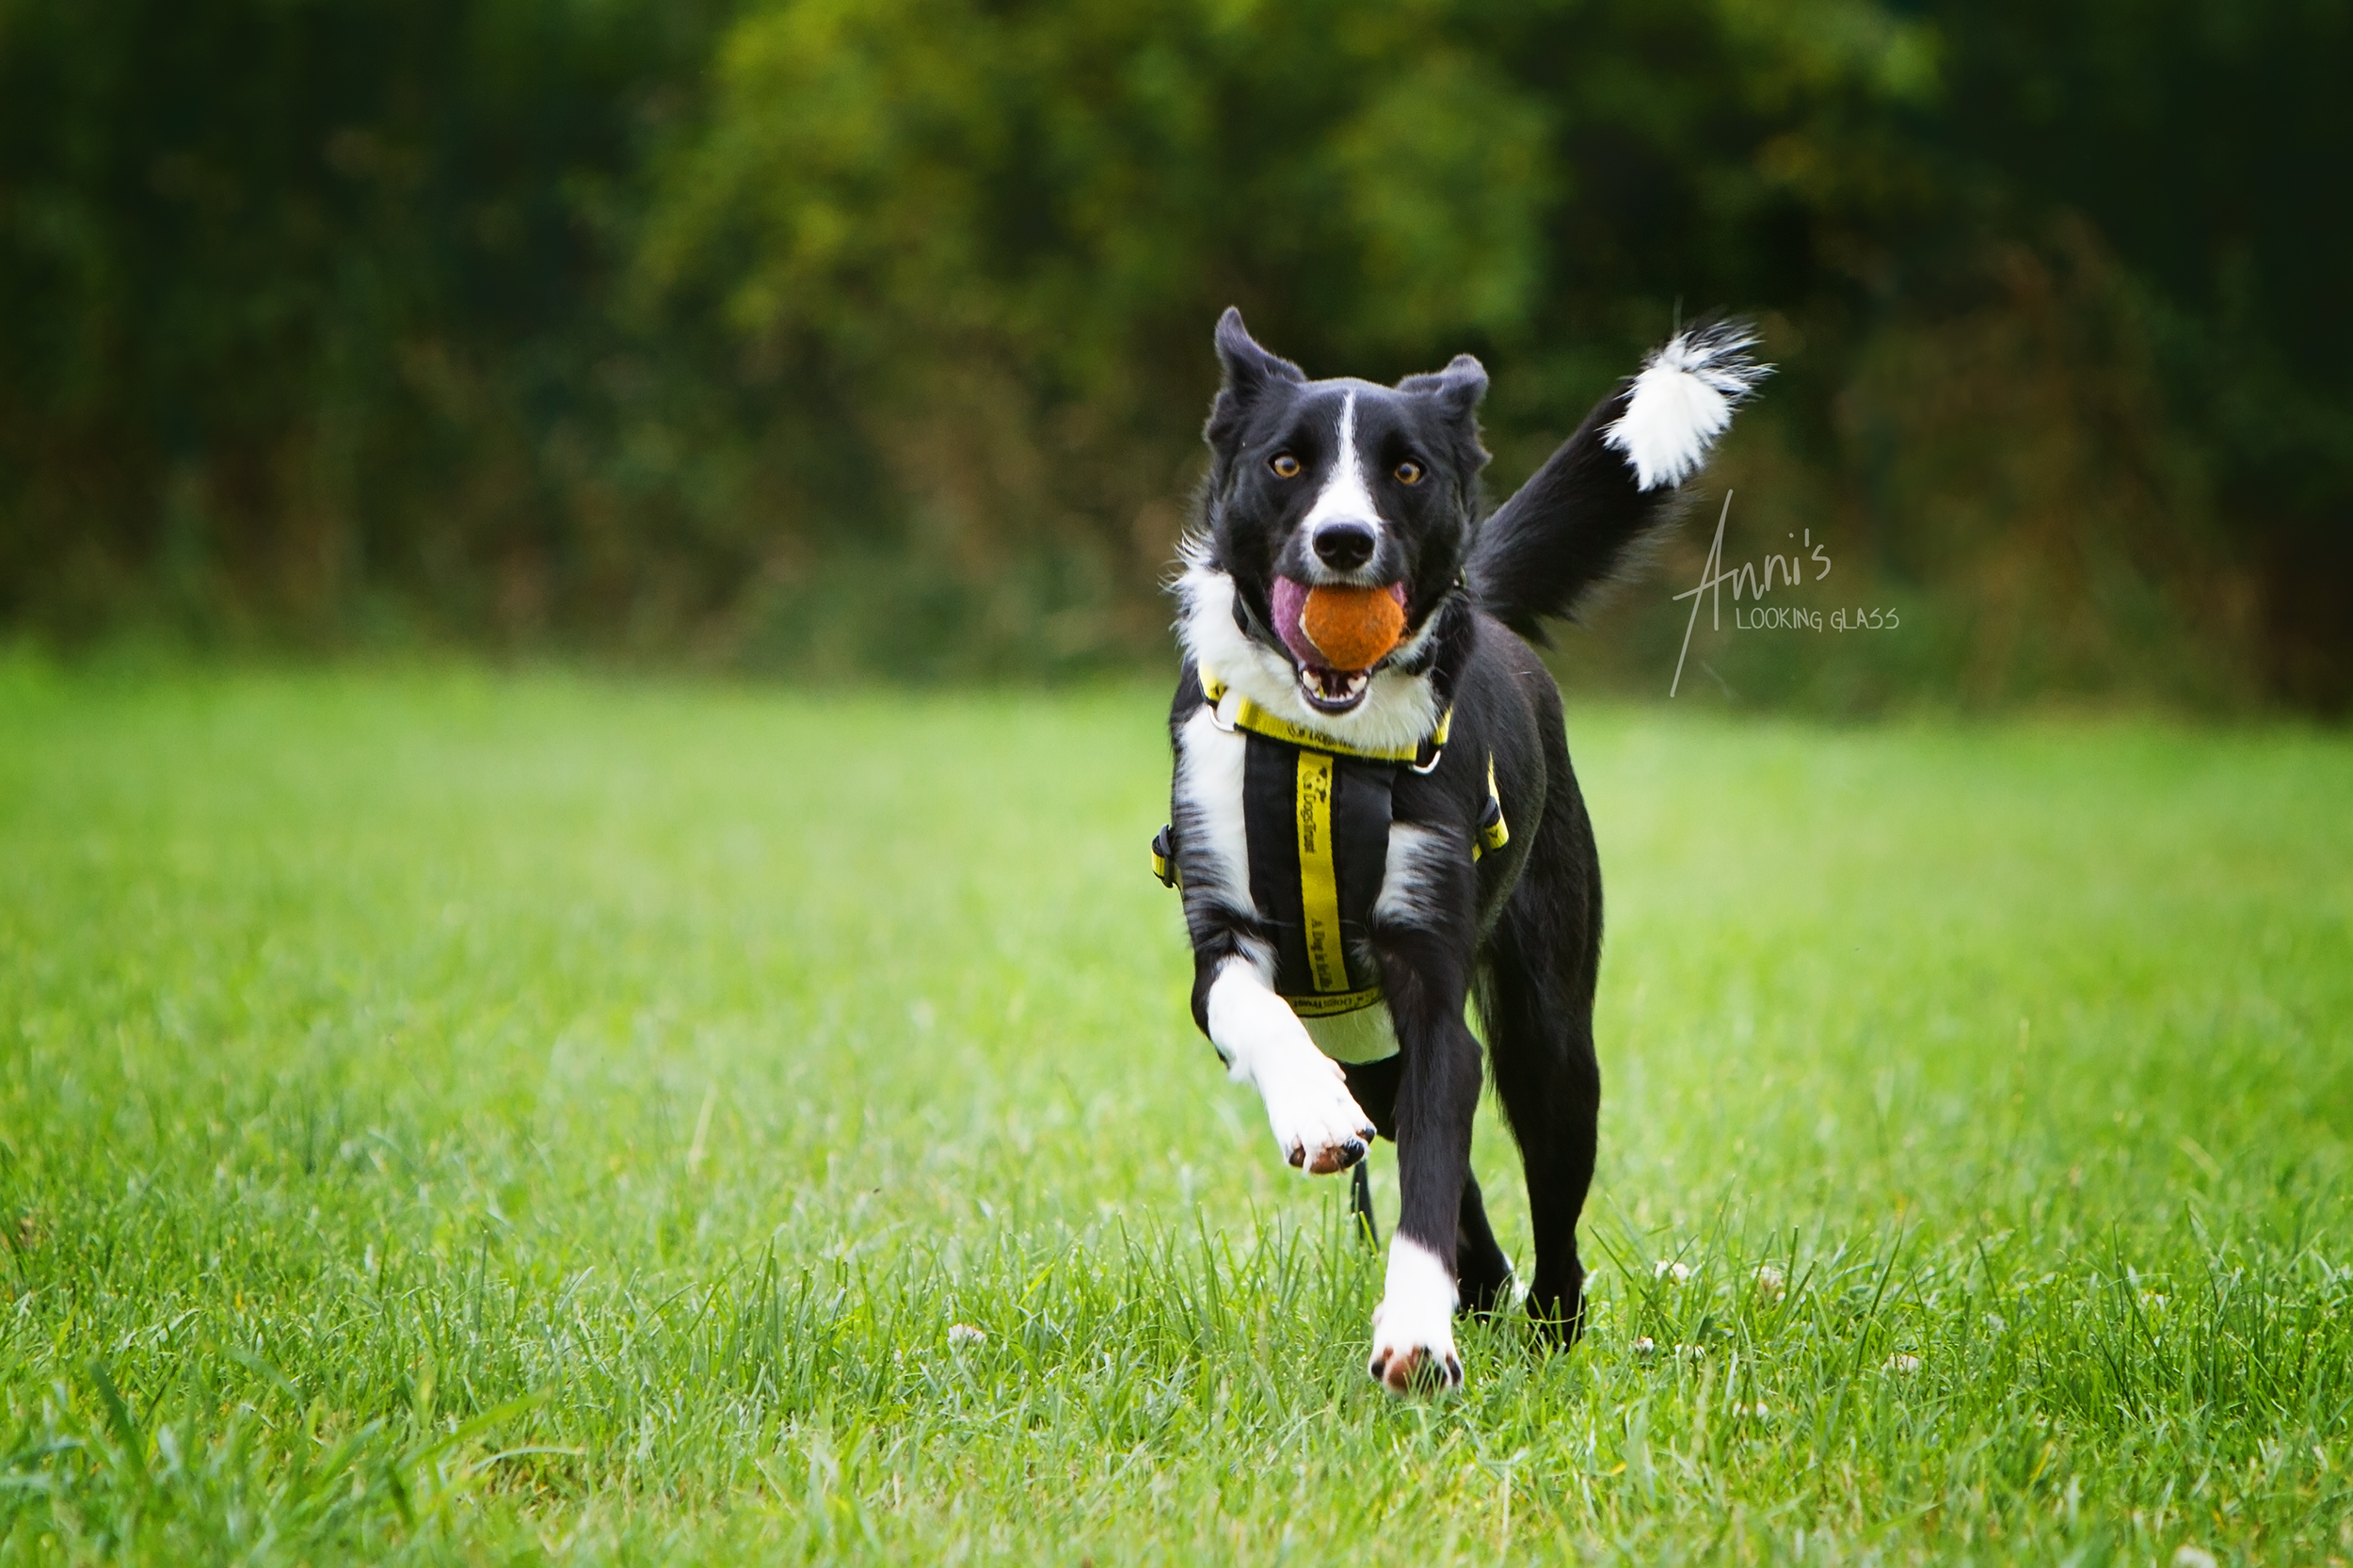 The Loughborough Dogs Trust houses between 80 and 100 dogs at any time. Lady the Collie is currently one of them.